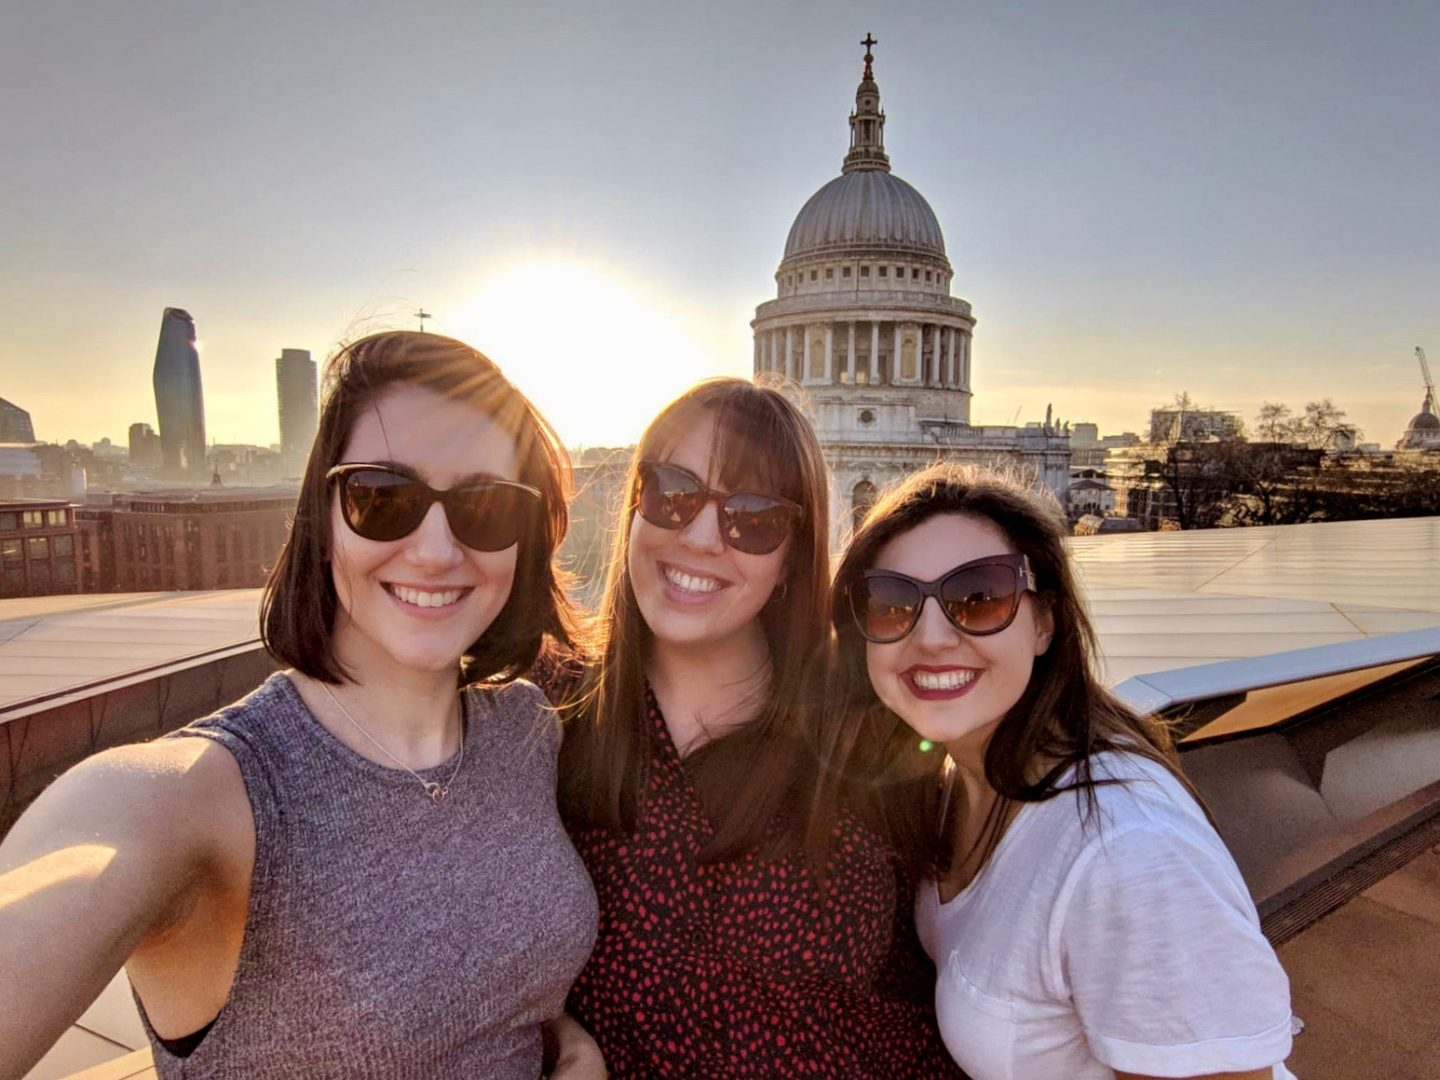 Practising gratitude during coronavirus: nell and two of her friends on a sunny day in London